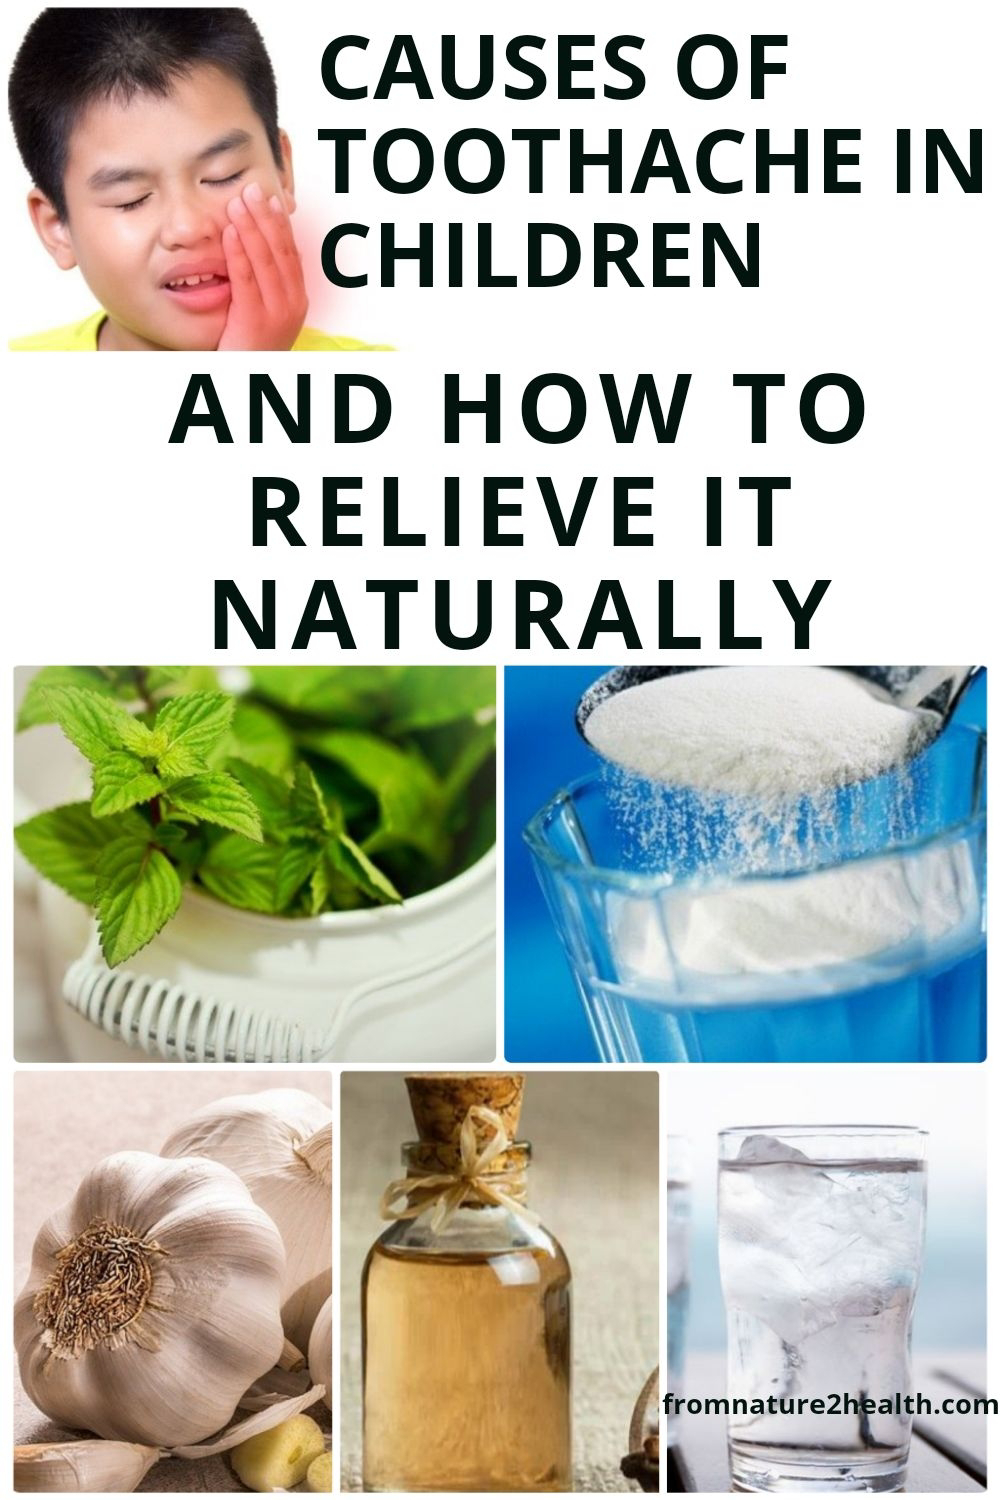 Causes of Toothache in Children and How to Relieve It Naturally